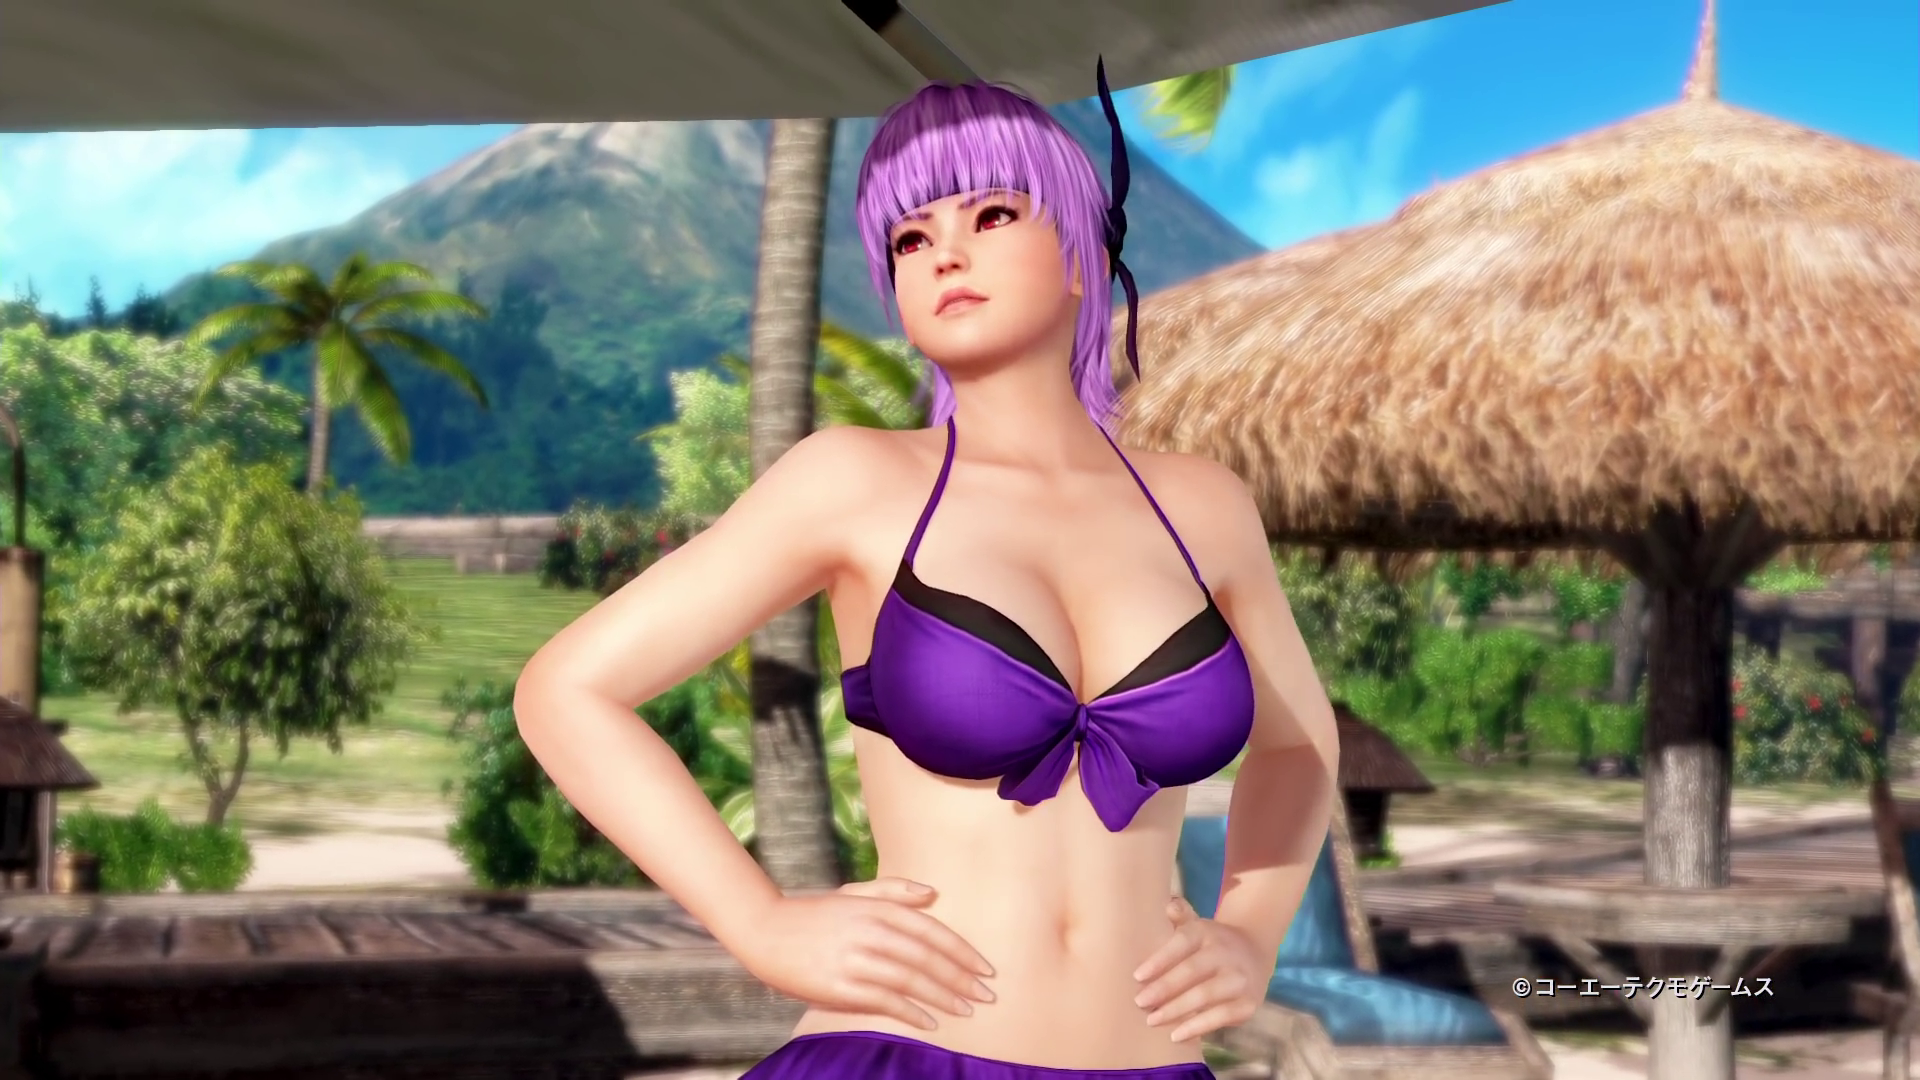 Dead or alive xtreme 3 release date in Sydney